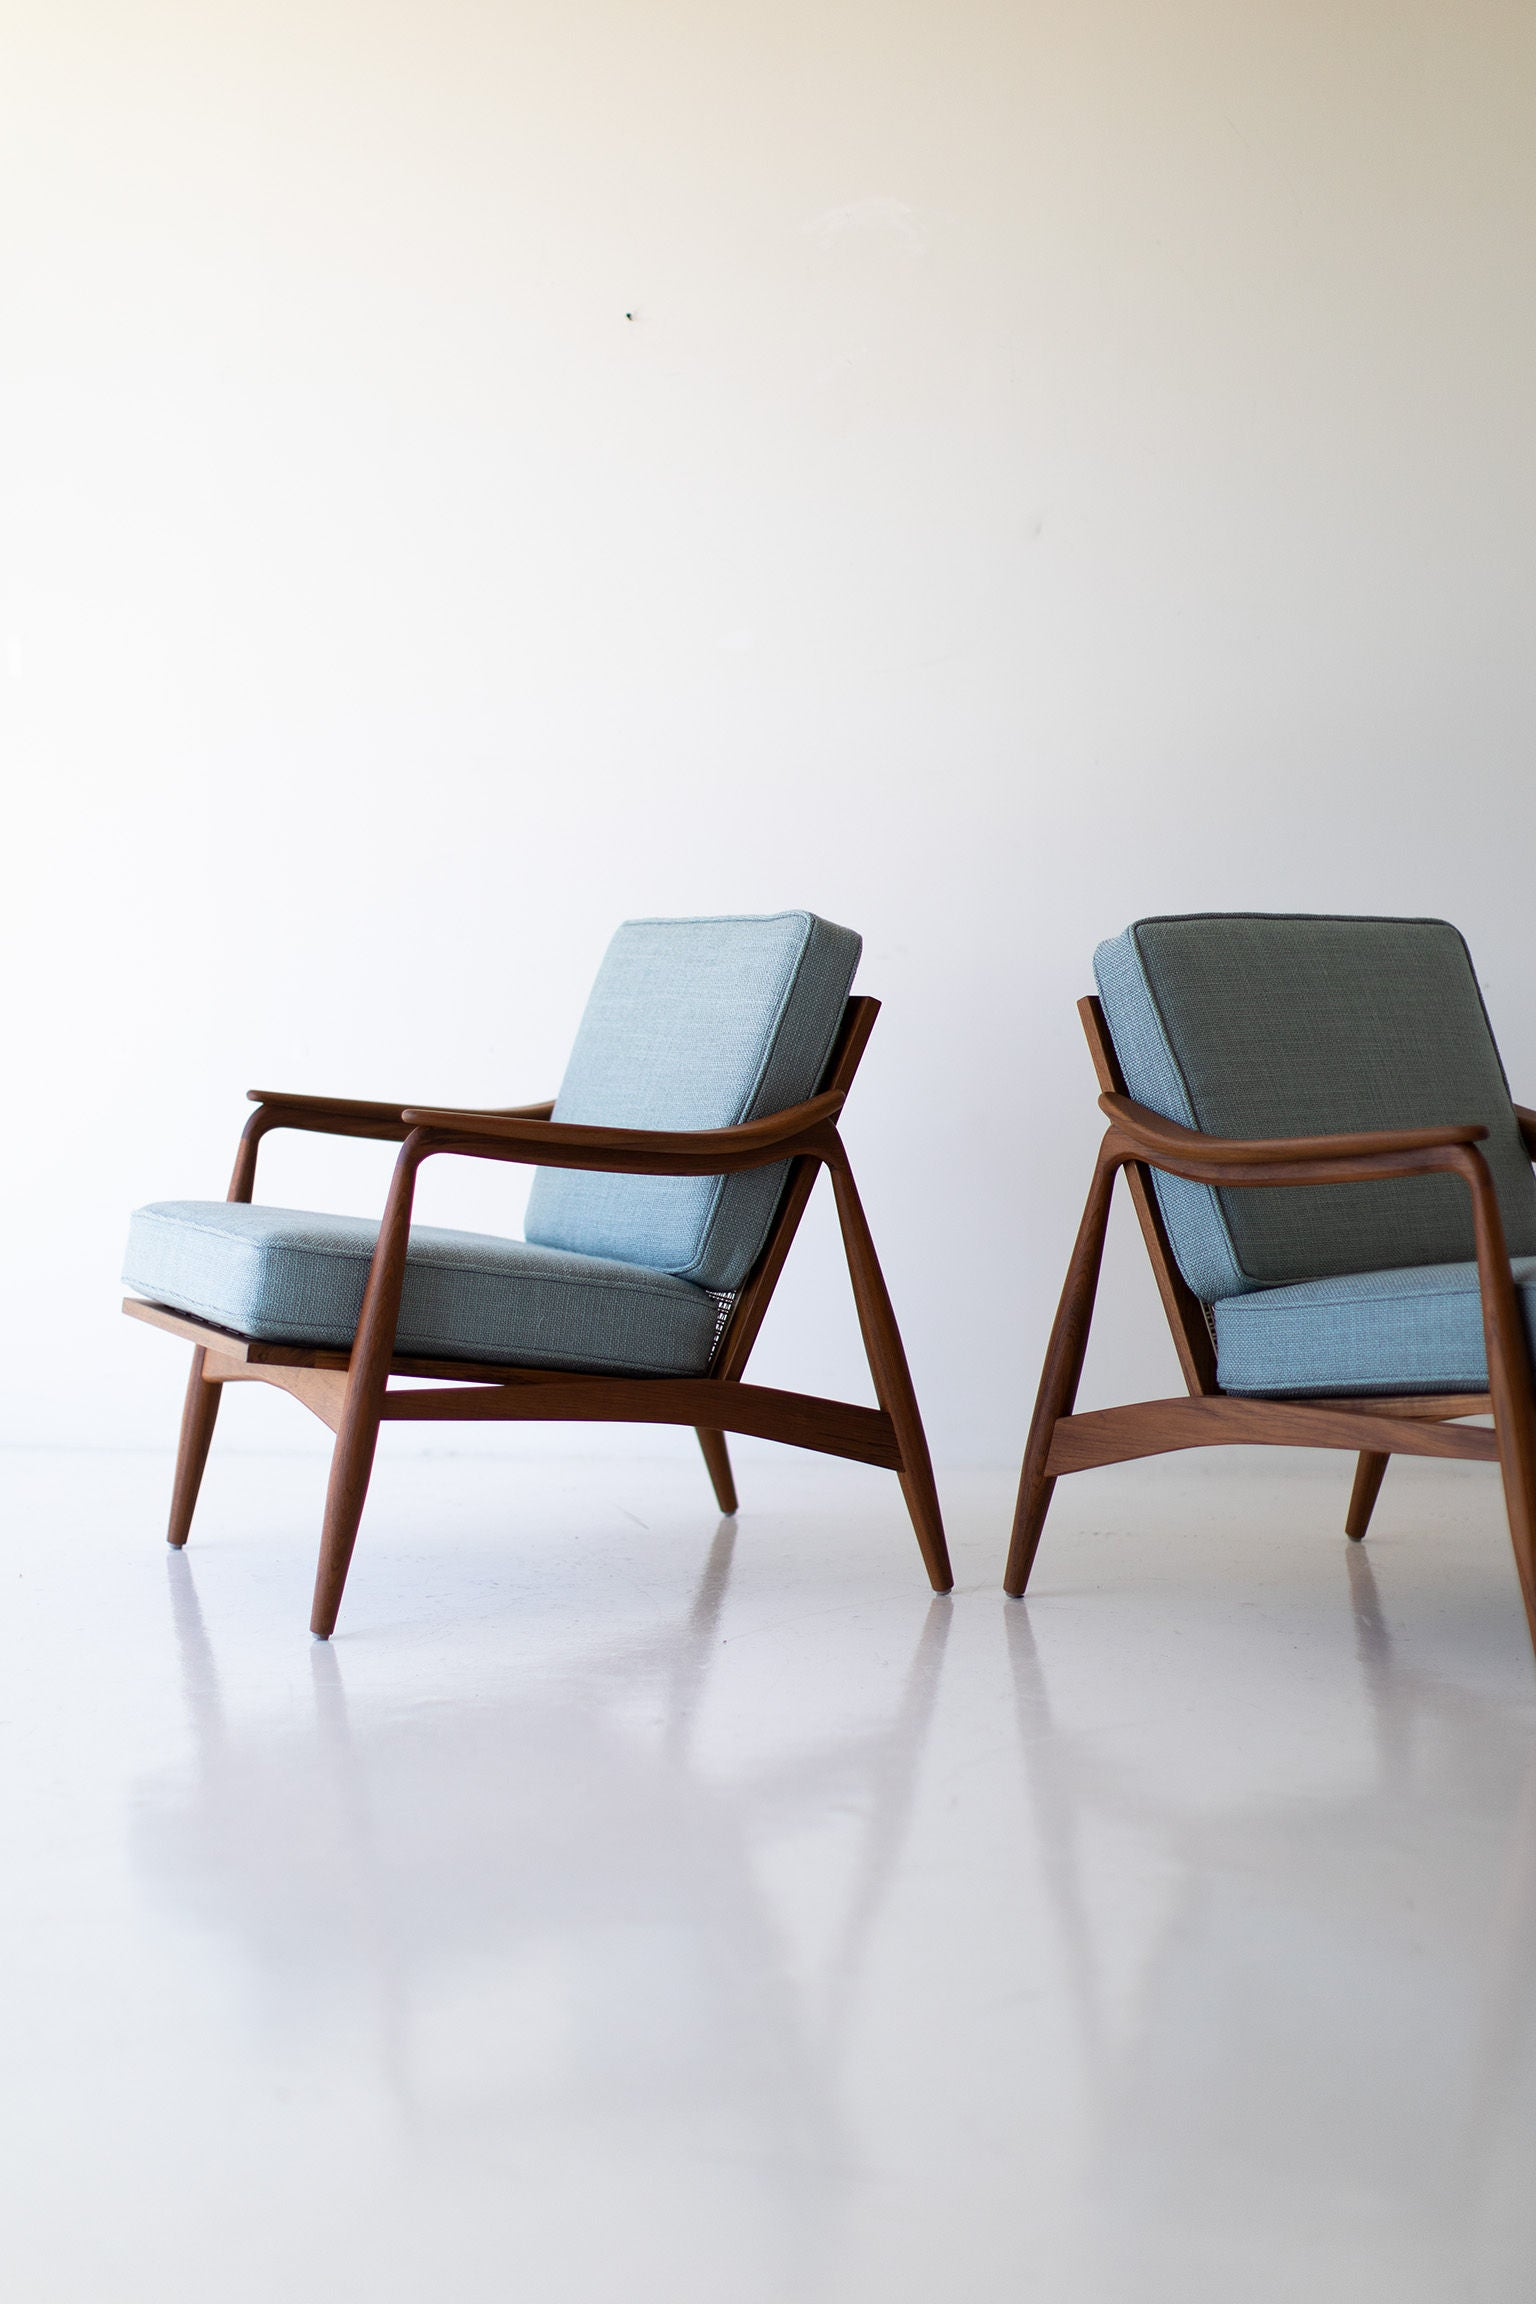 Lawrence Peabody Cane Back Teak Lounge Chairs - 2001P